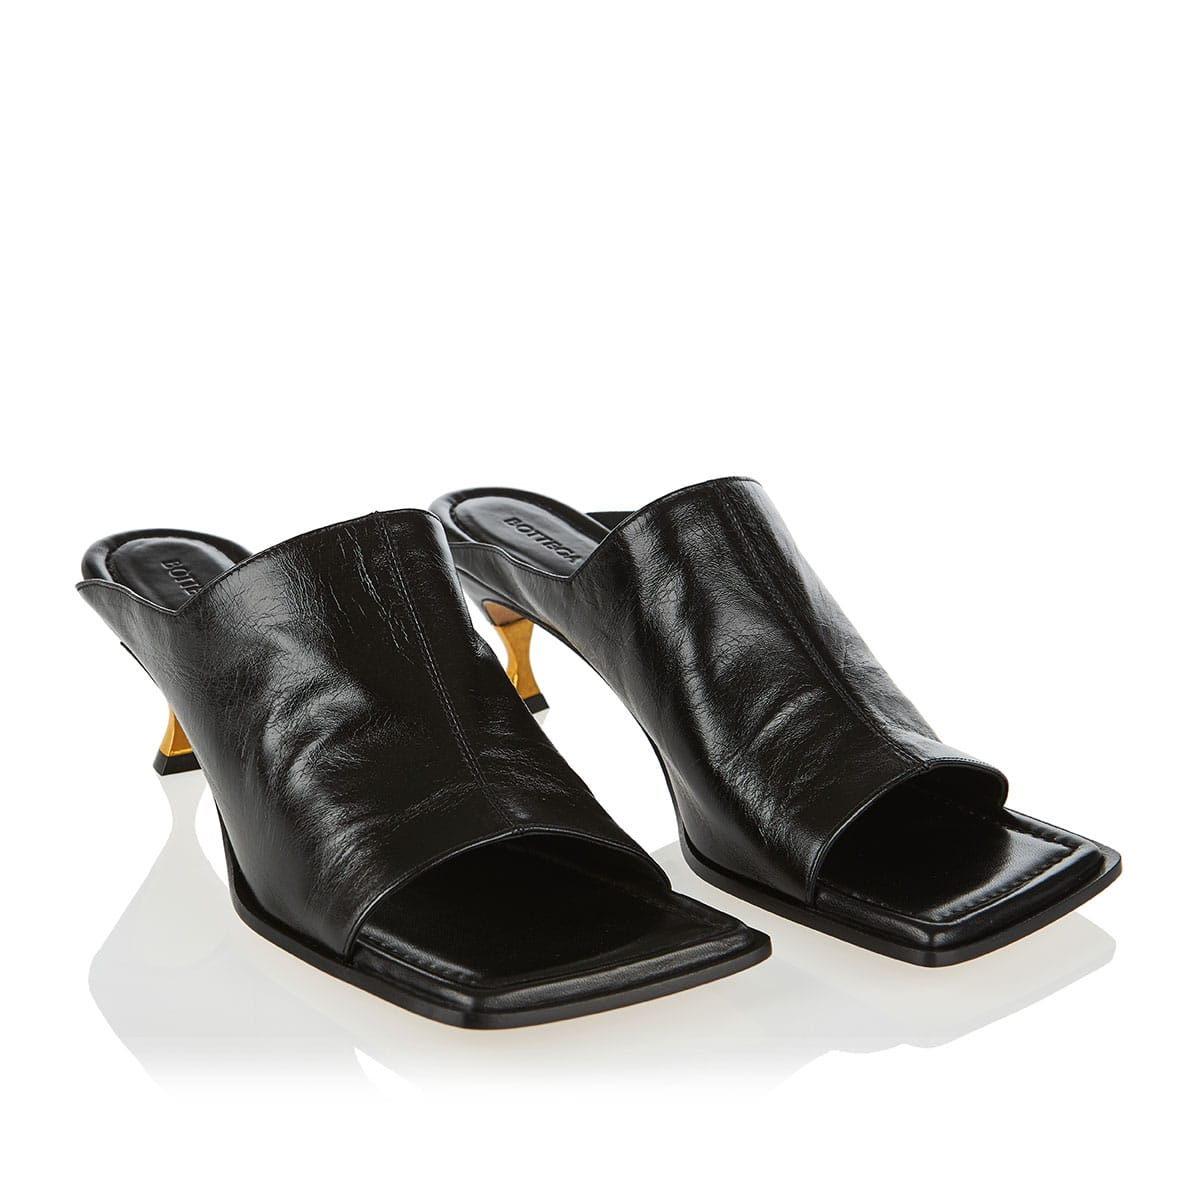 Square-toe leather mules